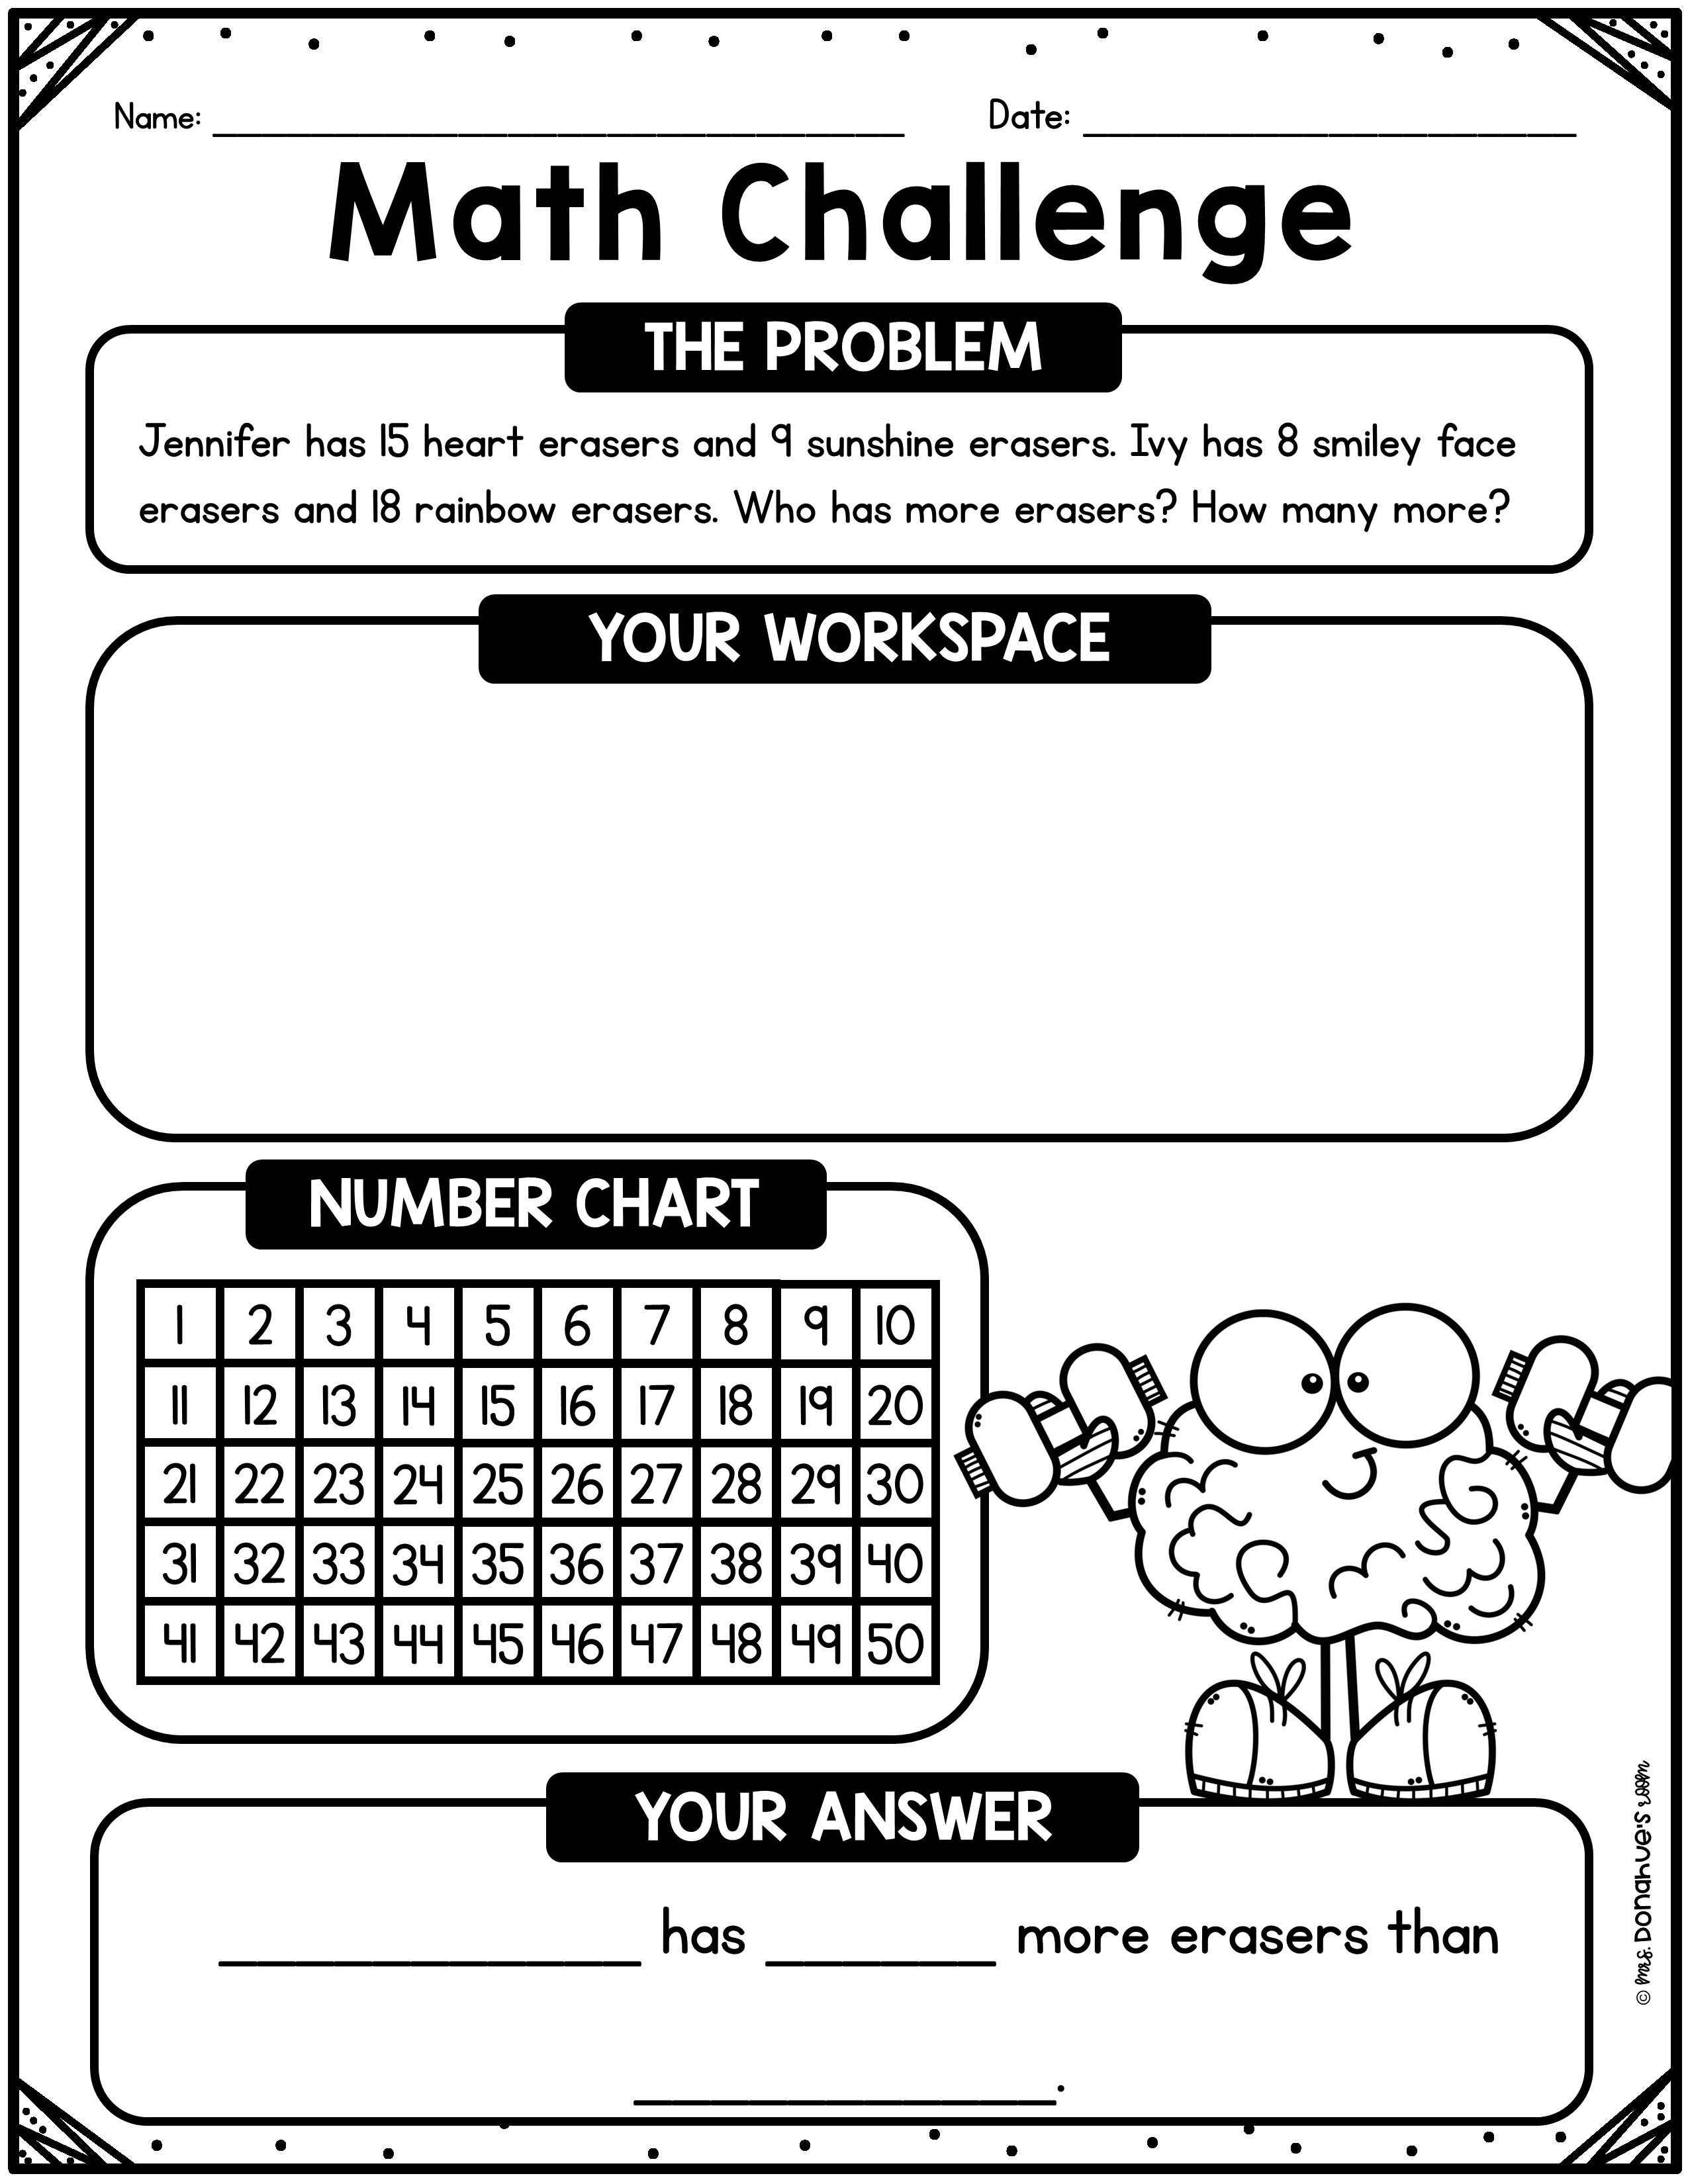 Freebie Math Reasoning Word Problem Samples Word Problems Math Challenge Math Addition and subtraction reasoning